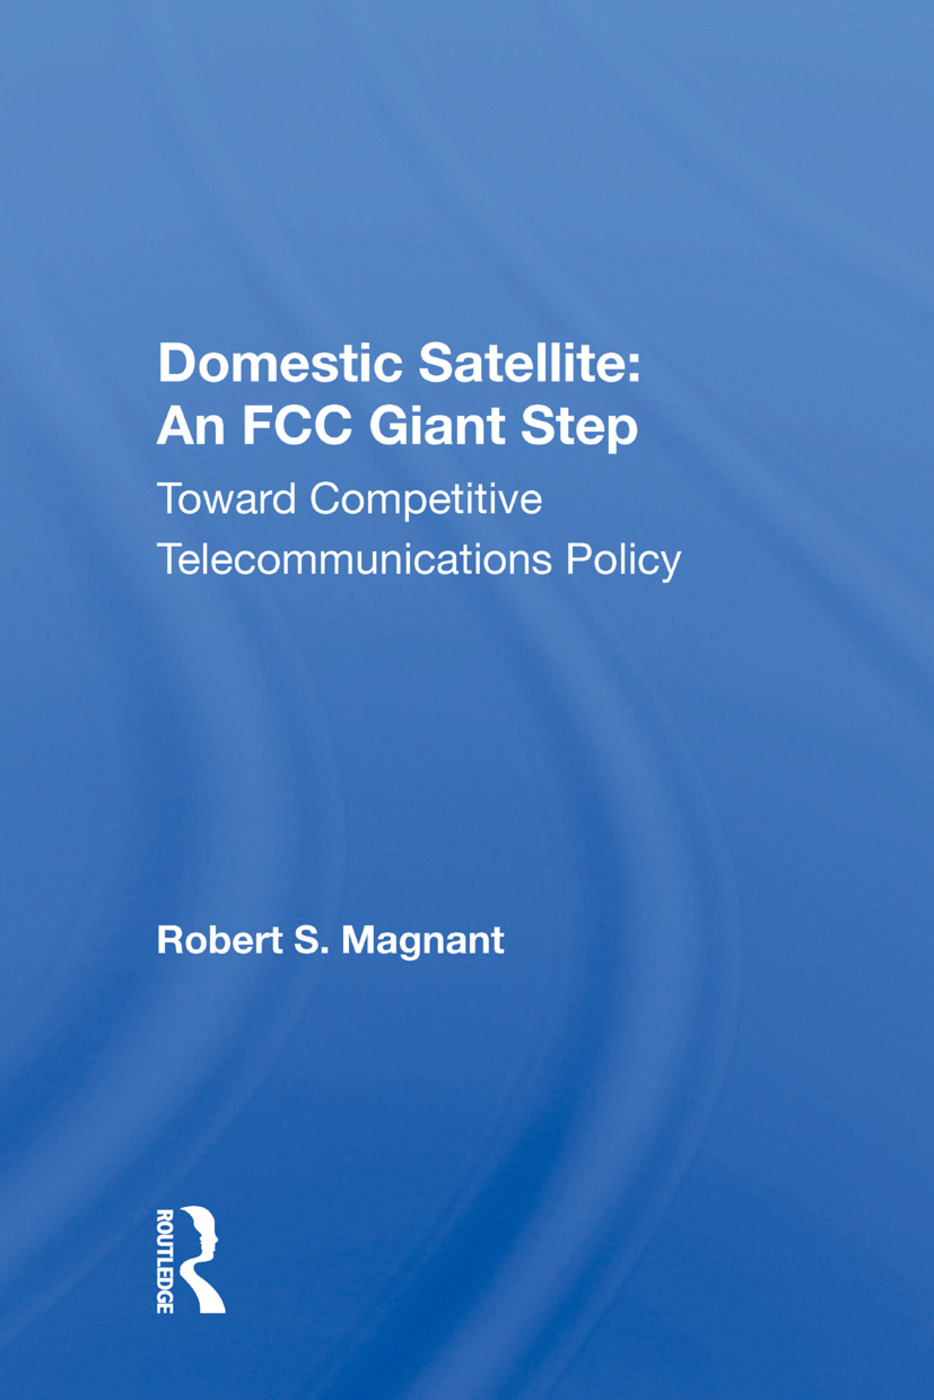 Domestic Satellite: An FCC Giant Step